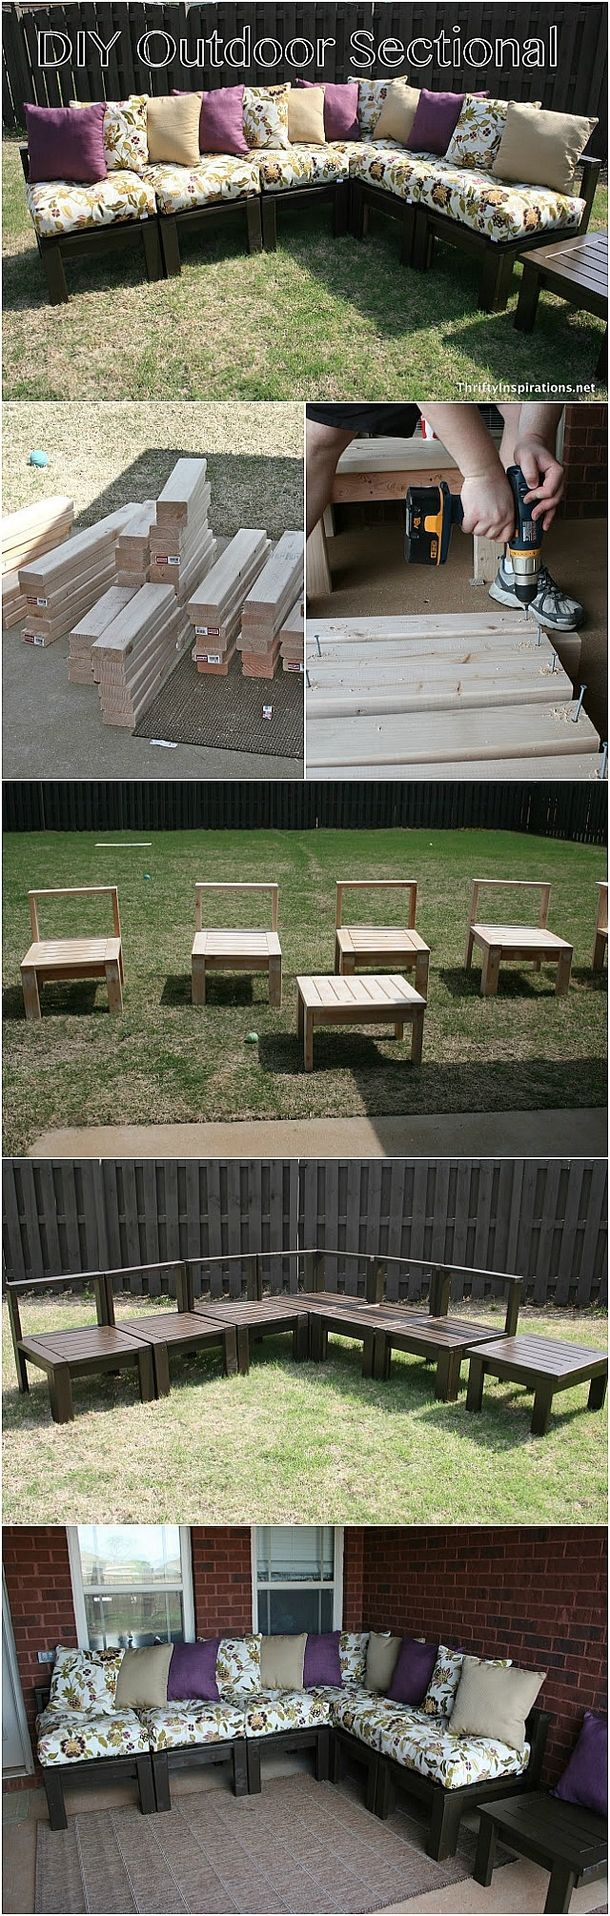 DIY Outdoor Sectional Pictures, Photos, and Images for Facebook, Tumblr, Pinterest, and Twitter